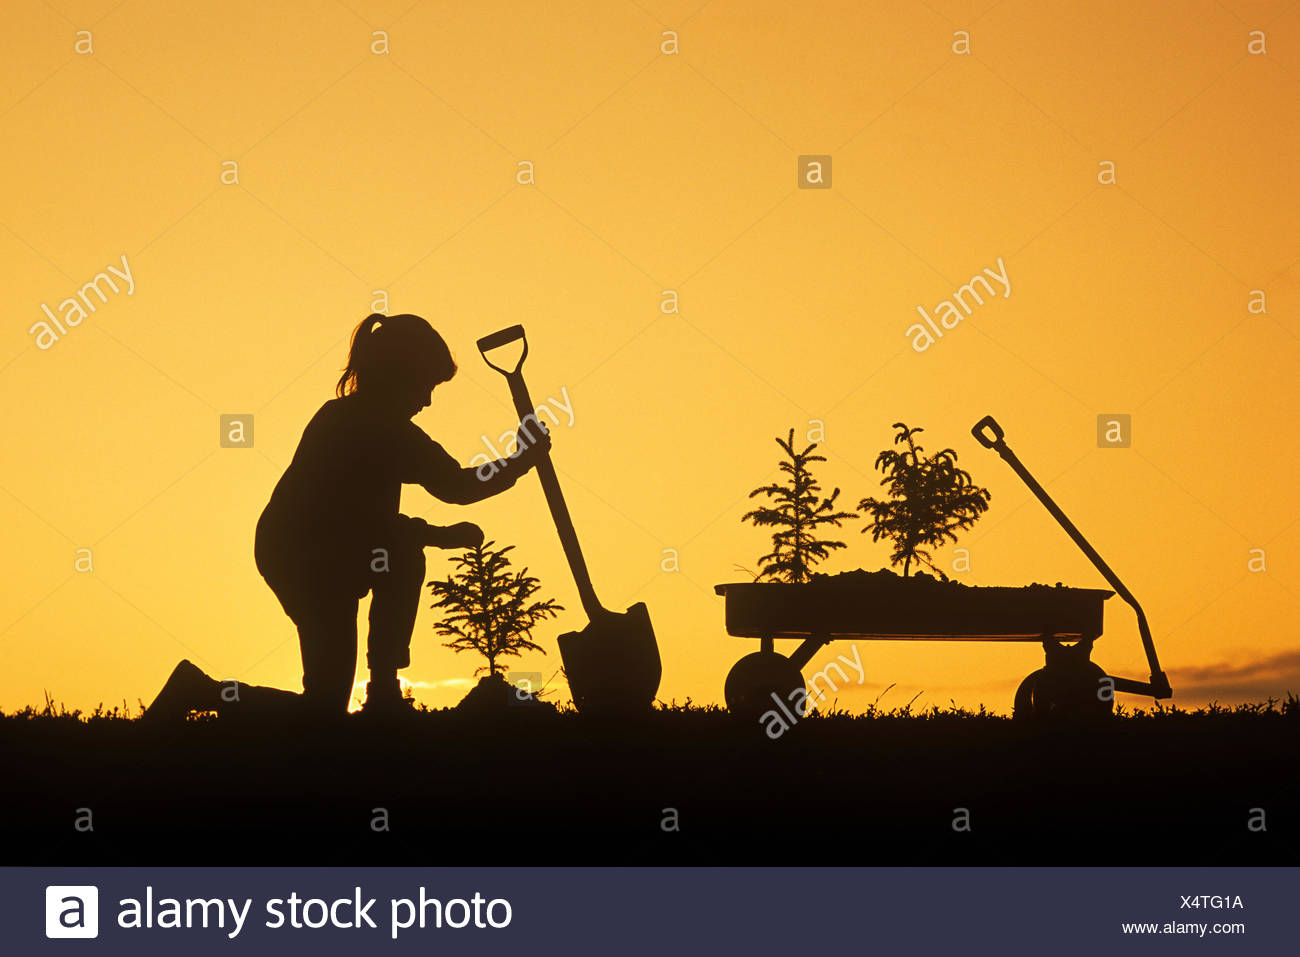 a girl holding a shovel, examines a spruce tree she has just planted, Winnipeg, Manitoba, Canada Stock Photo